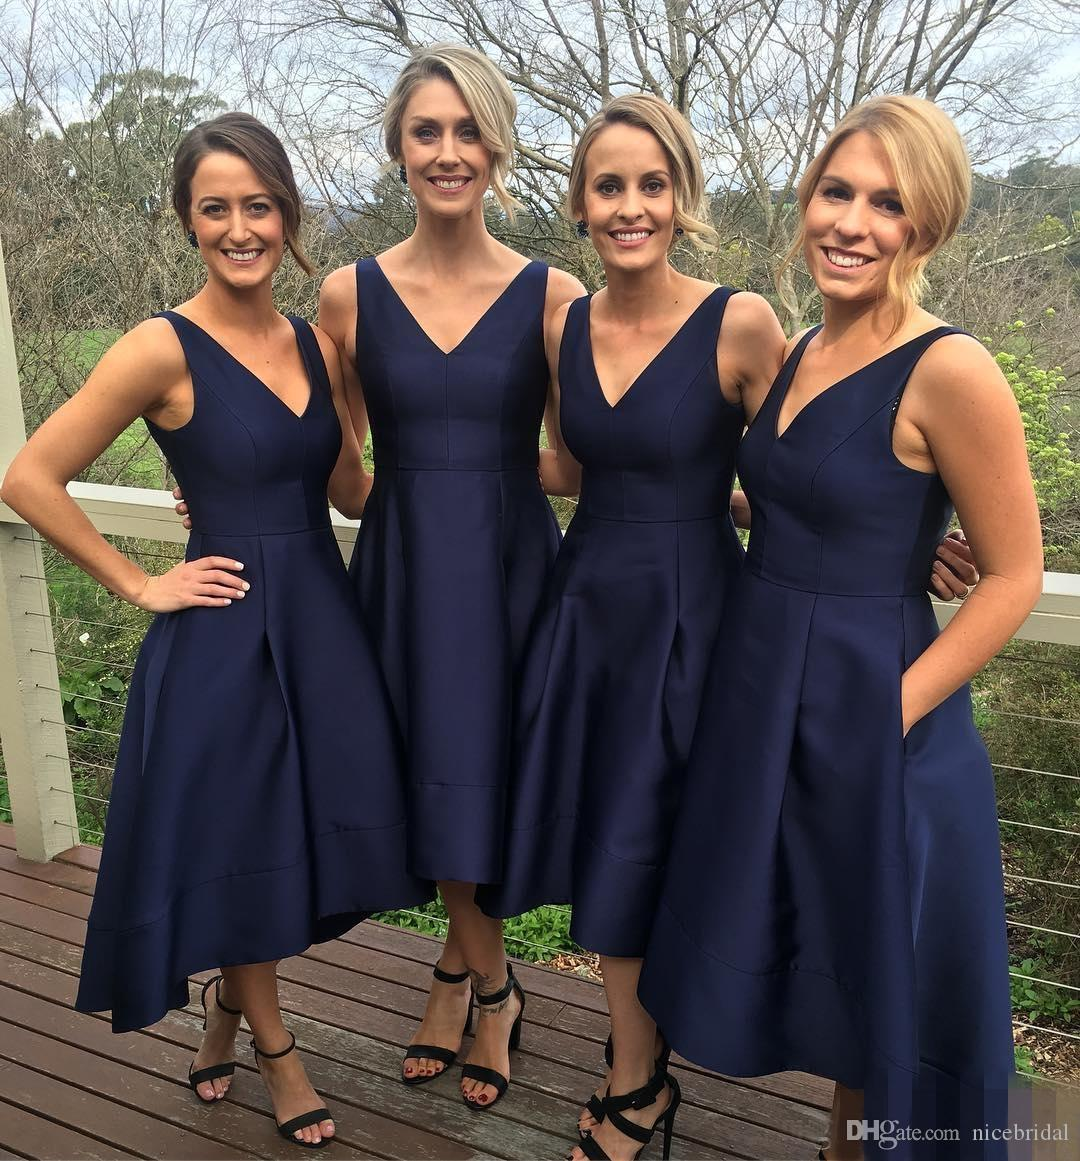 Navy blue satin bridesmaid dresses for wedding party girls high navy blue satin bridesmaid dresses for wedding party girls high low v neck summer beach garden simple cheap with pockets vestido madrinha bridesmaid dresses ombrellifo Image collections